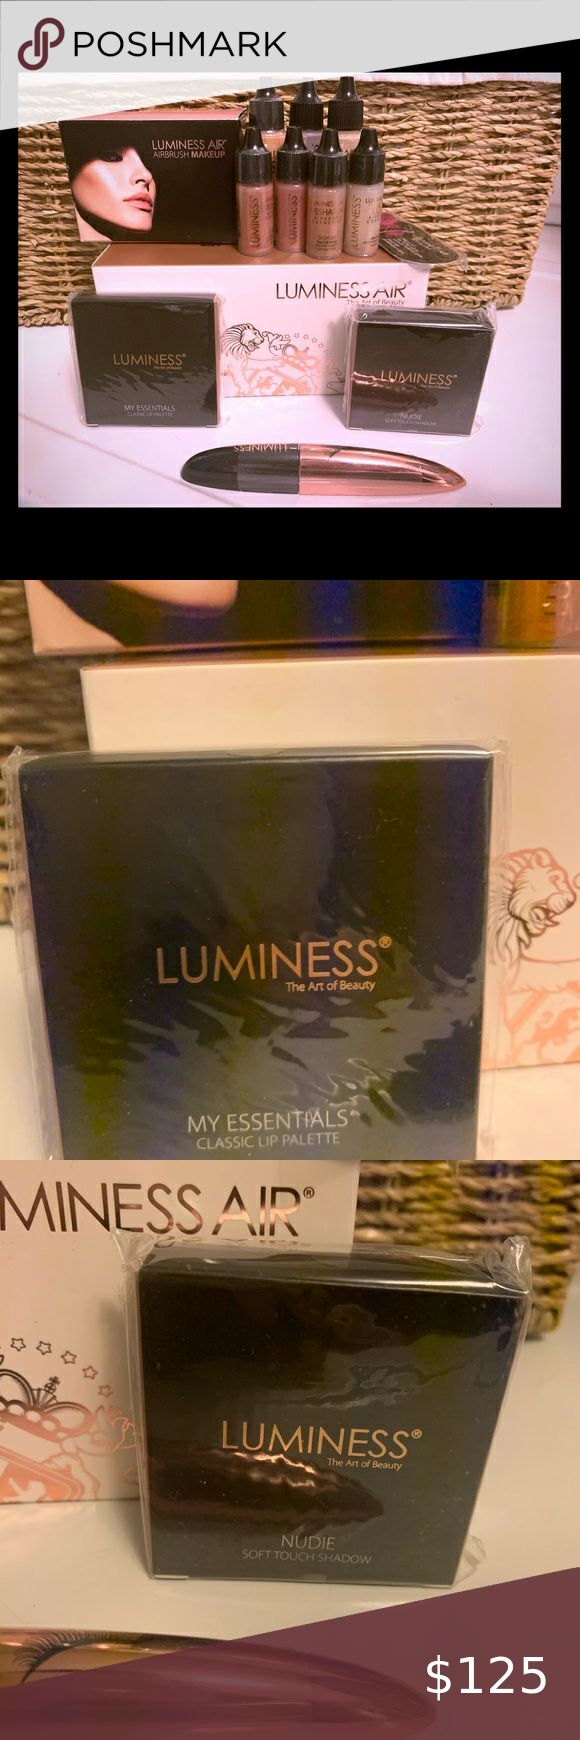 Luminess Air Makeup Kit in 2020 Luminess air makeup